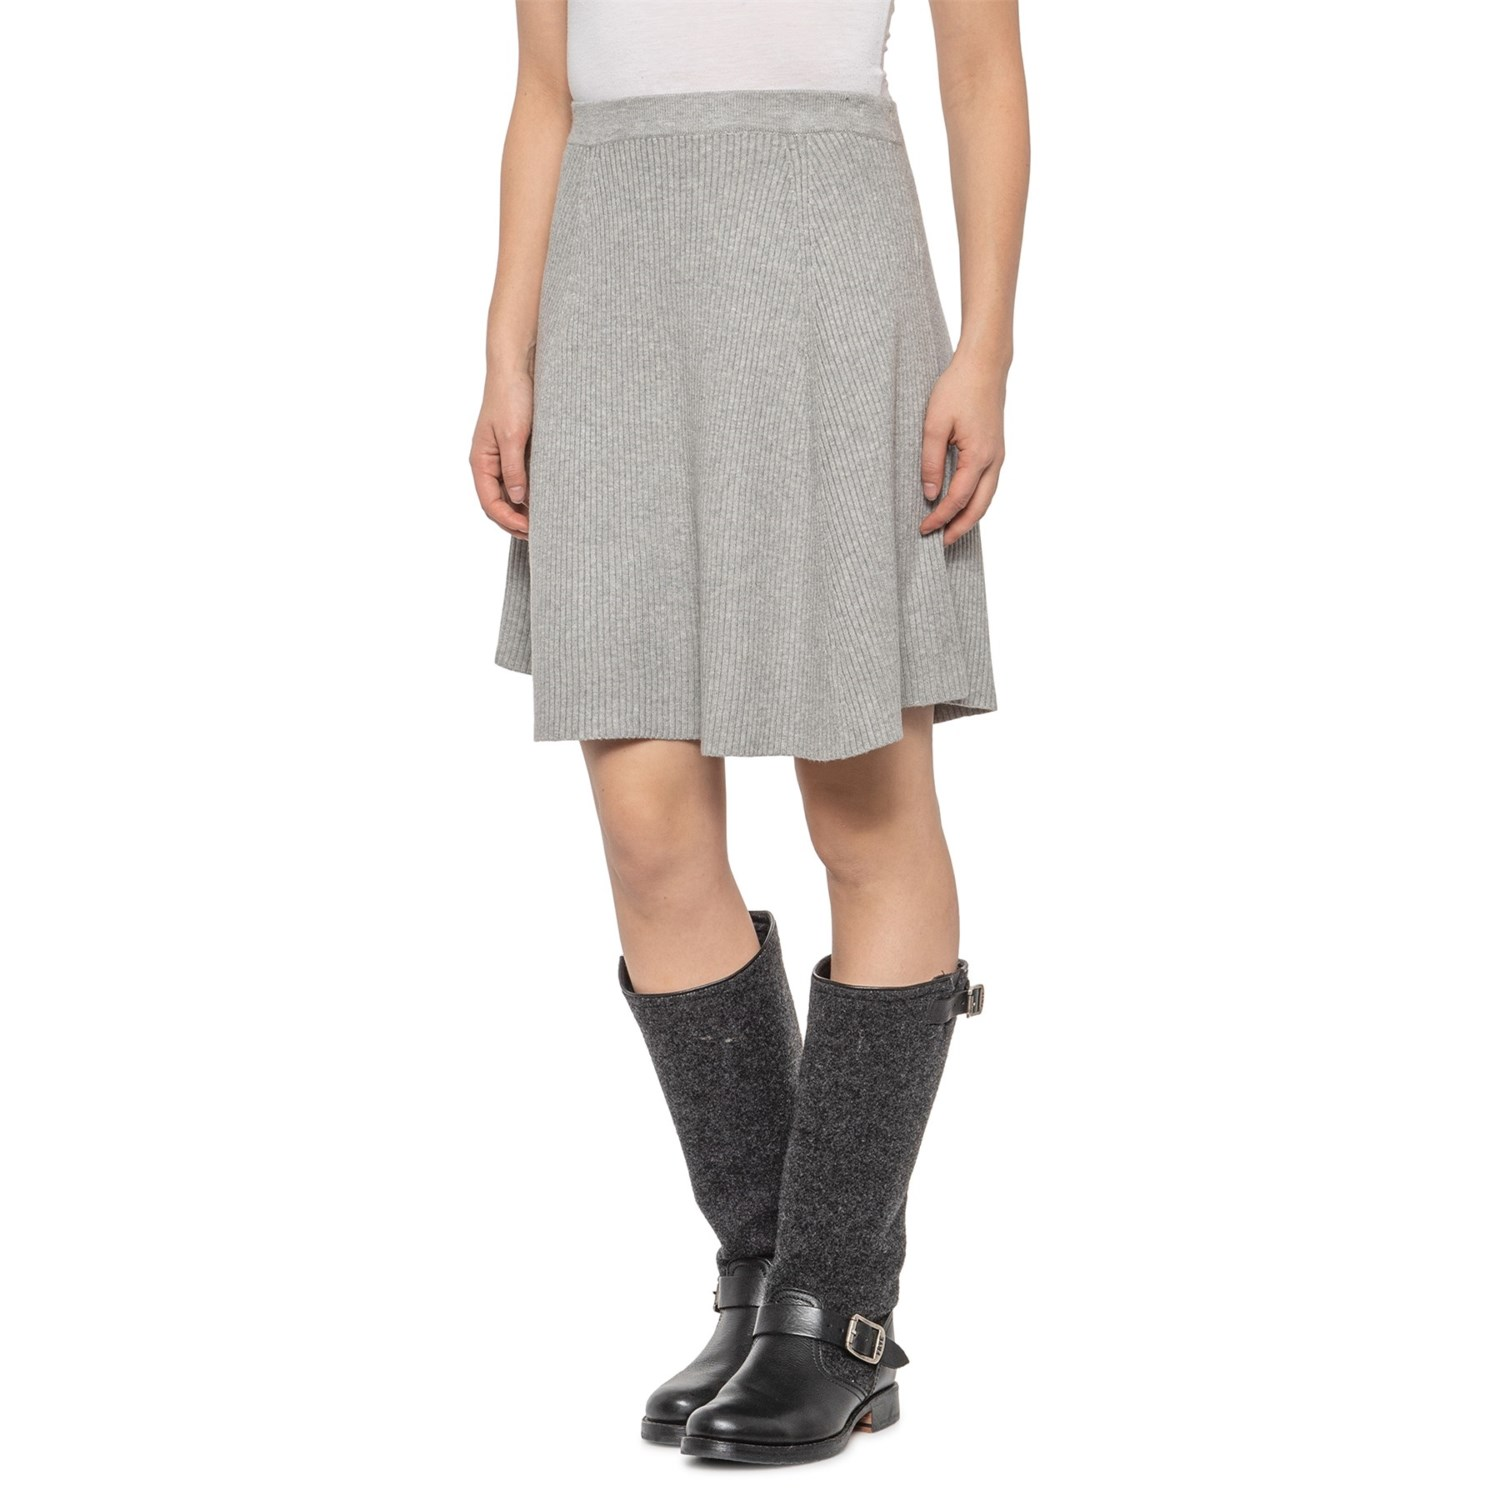 Adrienne Vittadini Grey Solid Skirt For Women Save 42 See more of adrienne vittadini on facebook. adrienne vittadini